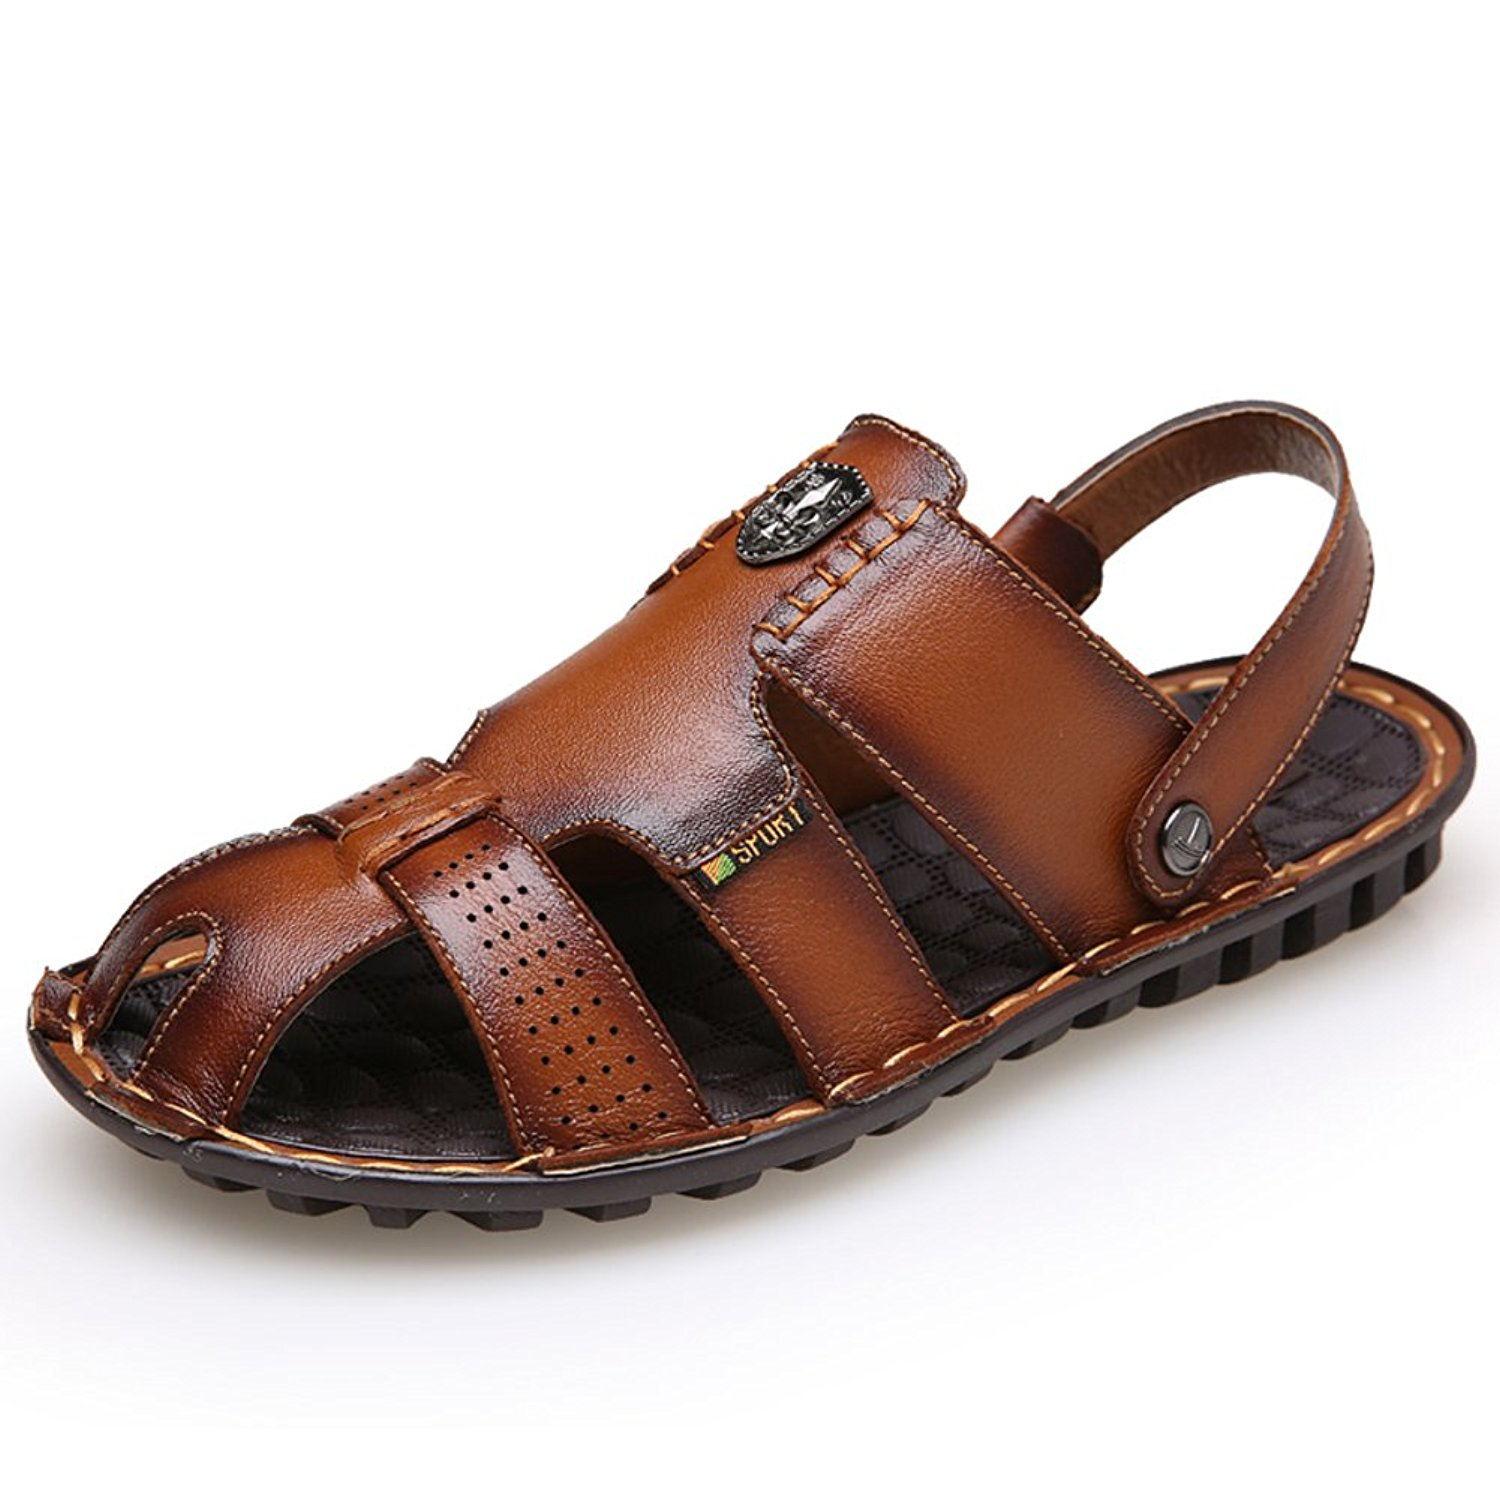 ASO-SLING Mens Synthesis Leather Open Toe Fisherman Sandals Shoes Beach Strap Non-slip